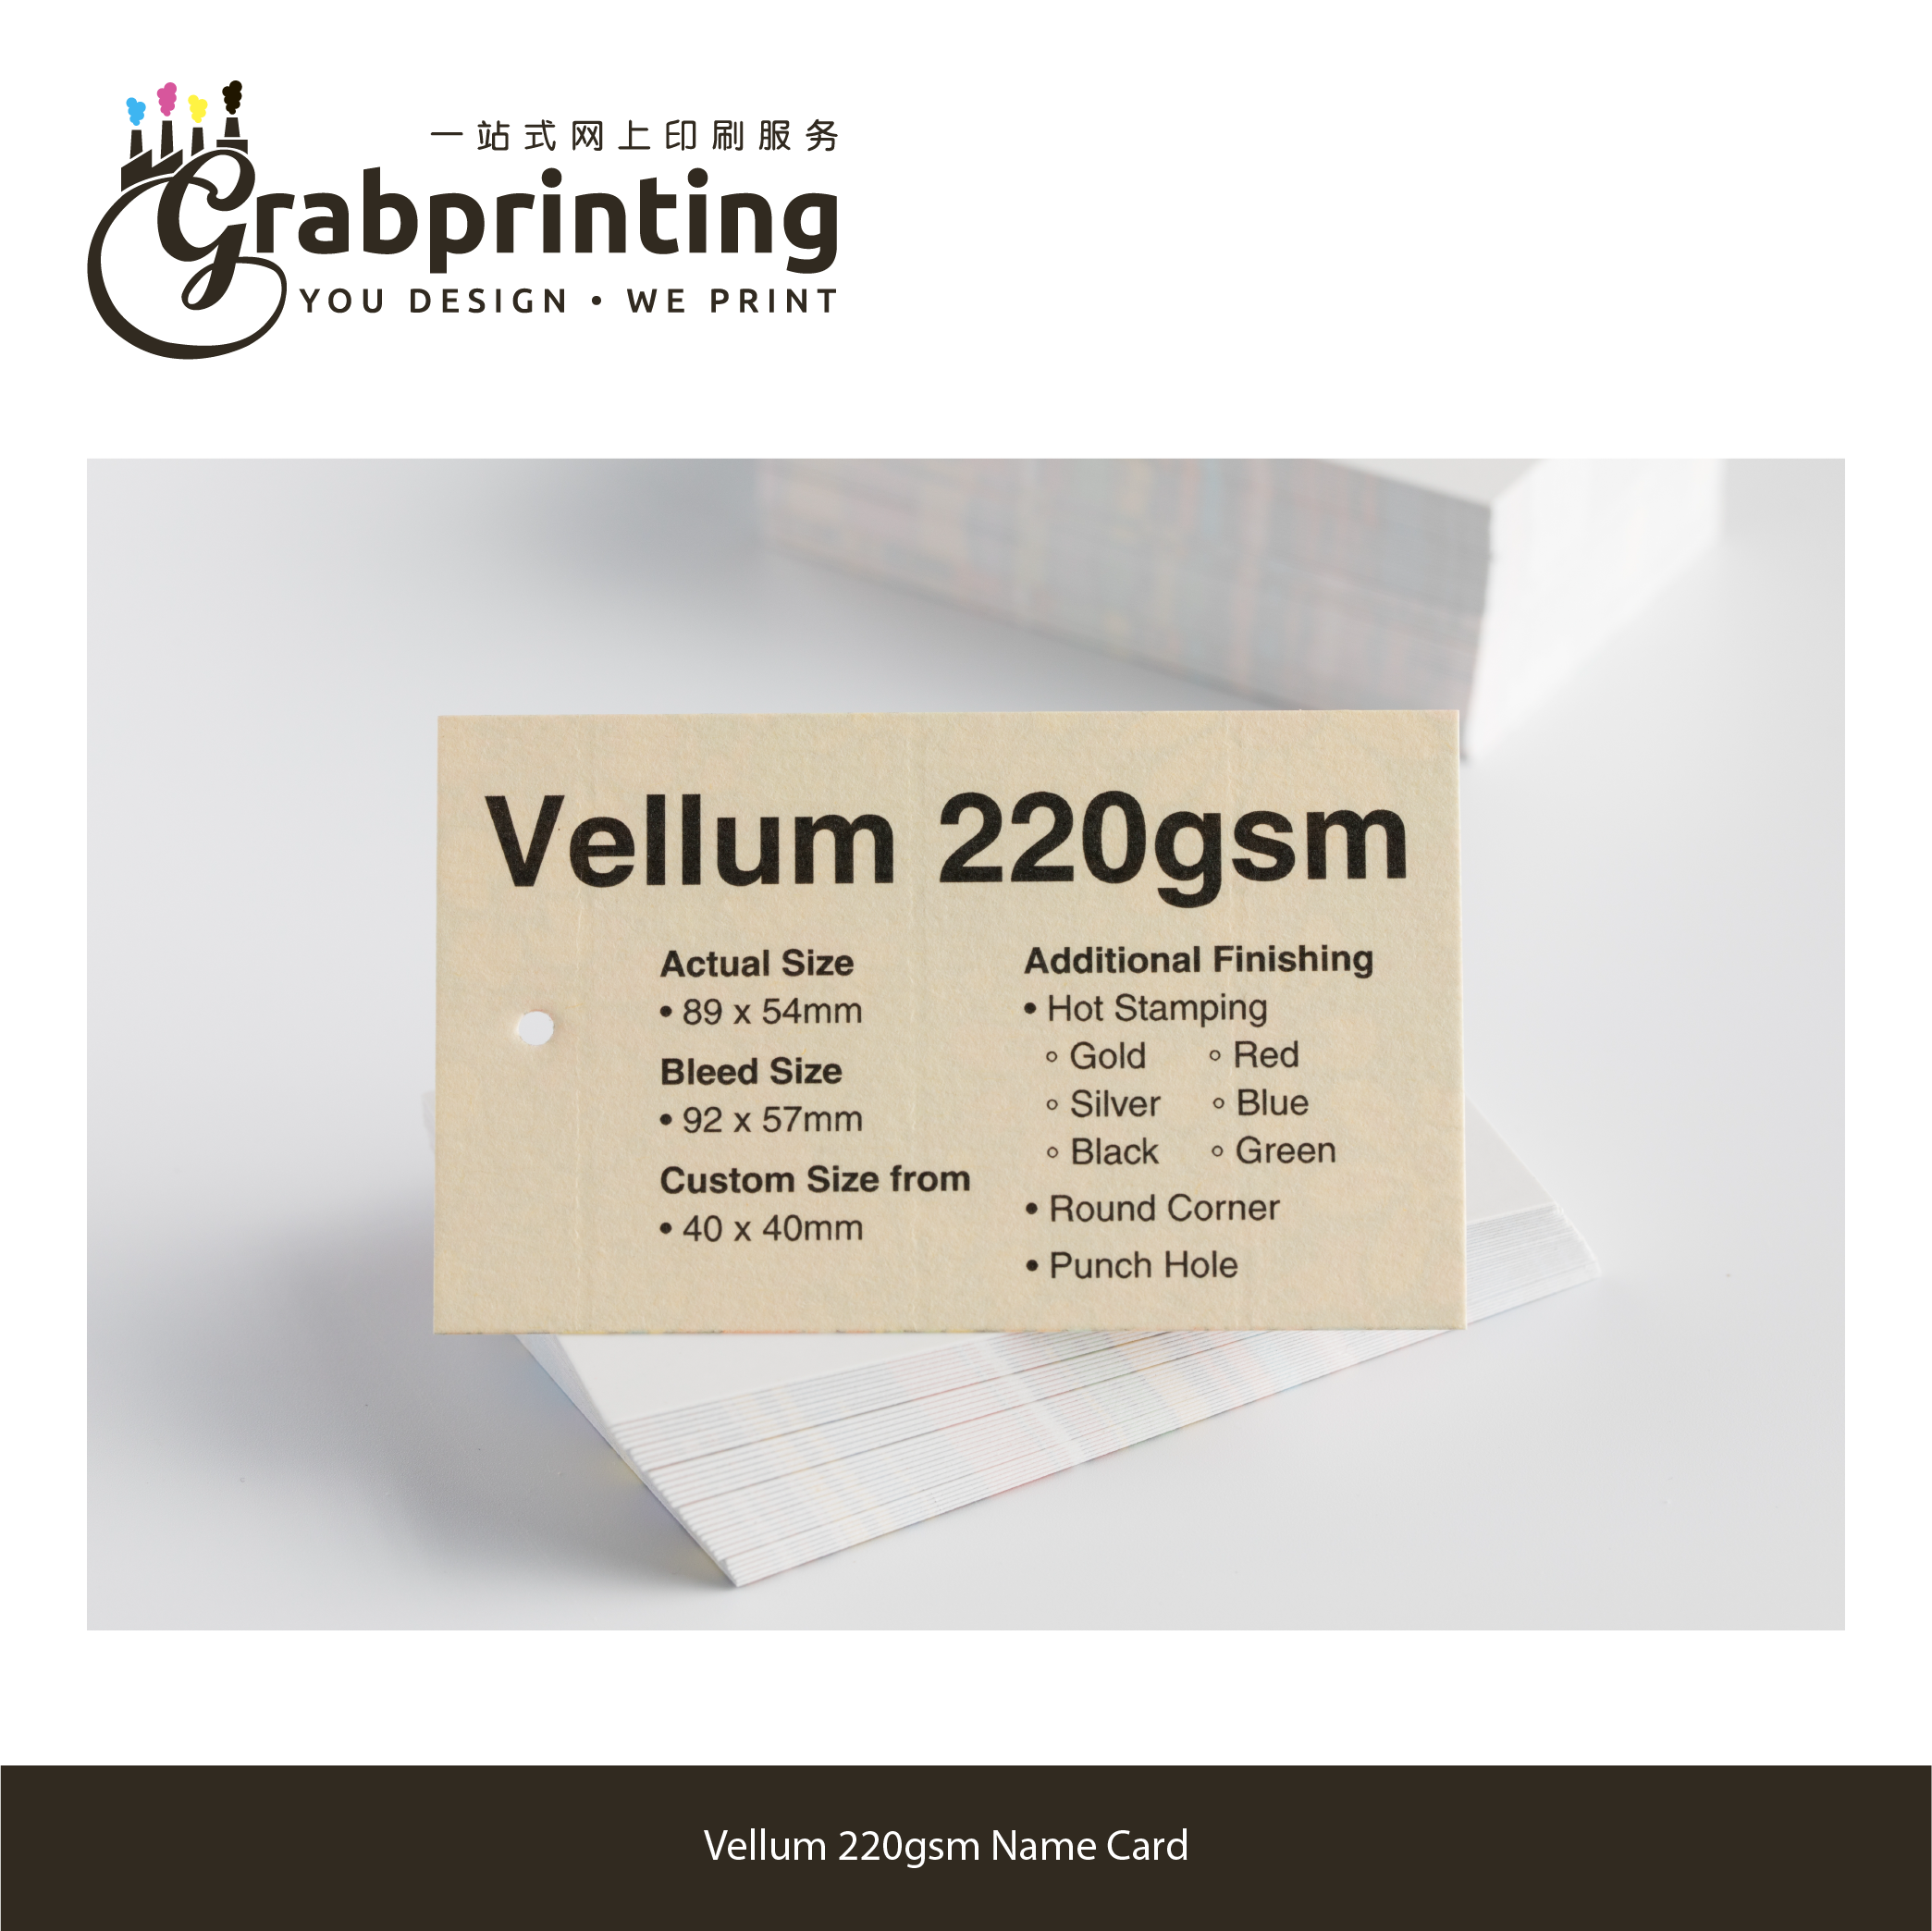 name cards Name Card (23 materials to choose from) grabprinting 40 Vellum 220gsm Name Card 501px 501px